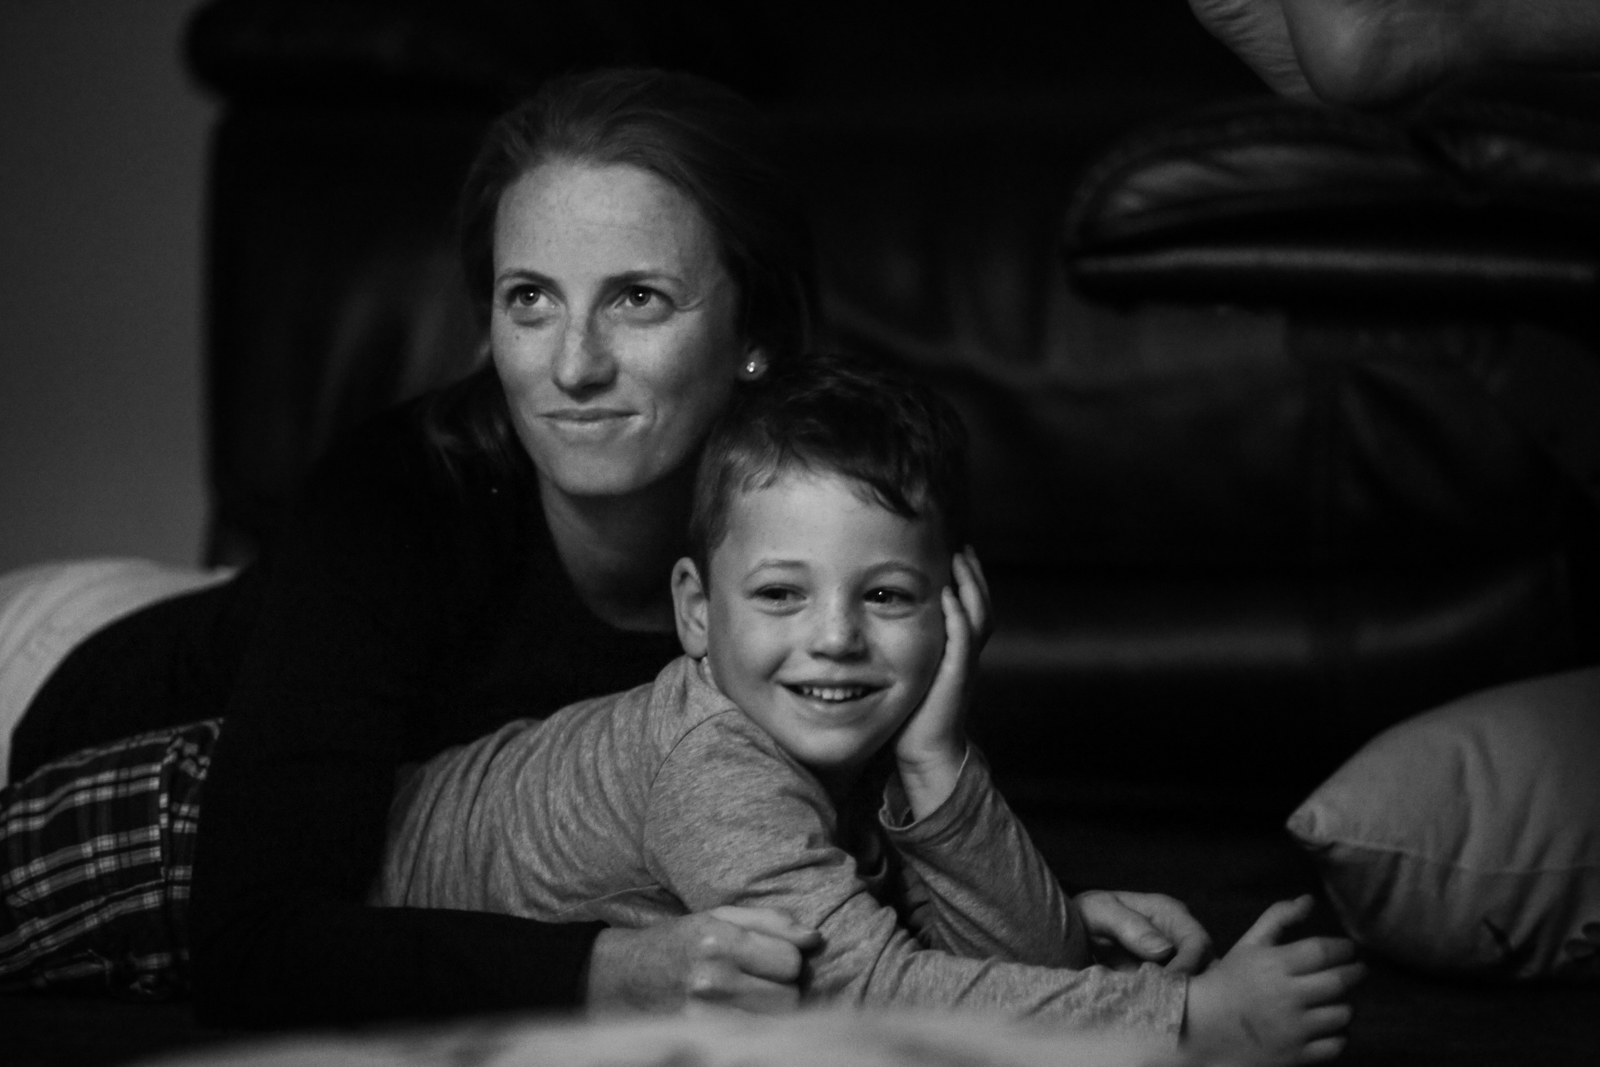 Woman leans over smiling boy with hand by his face